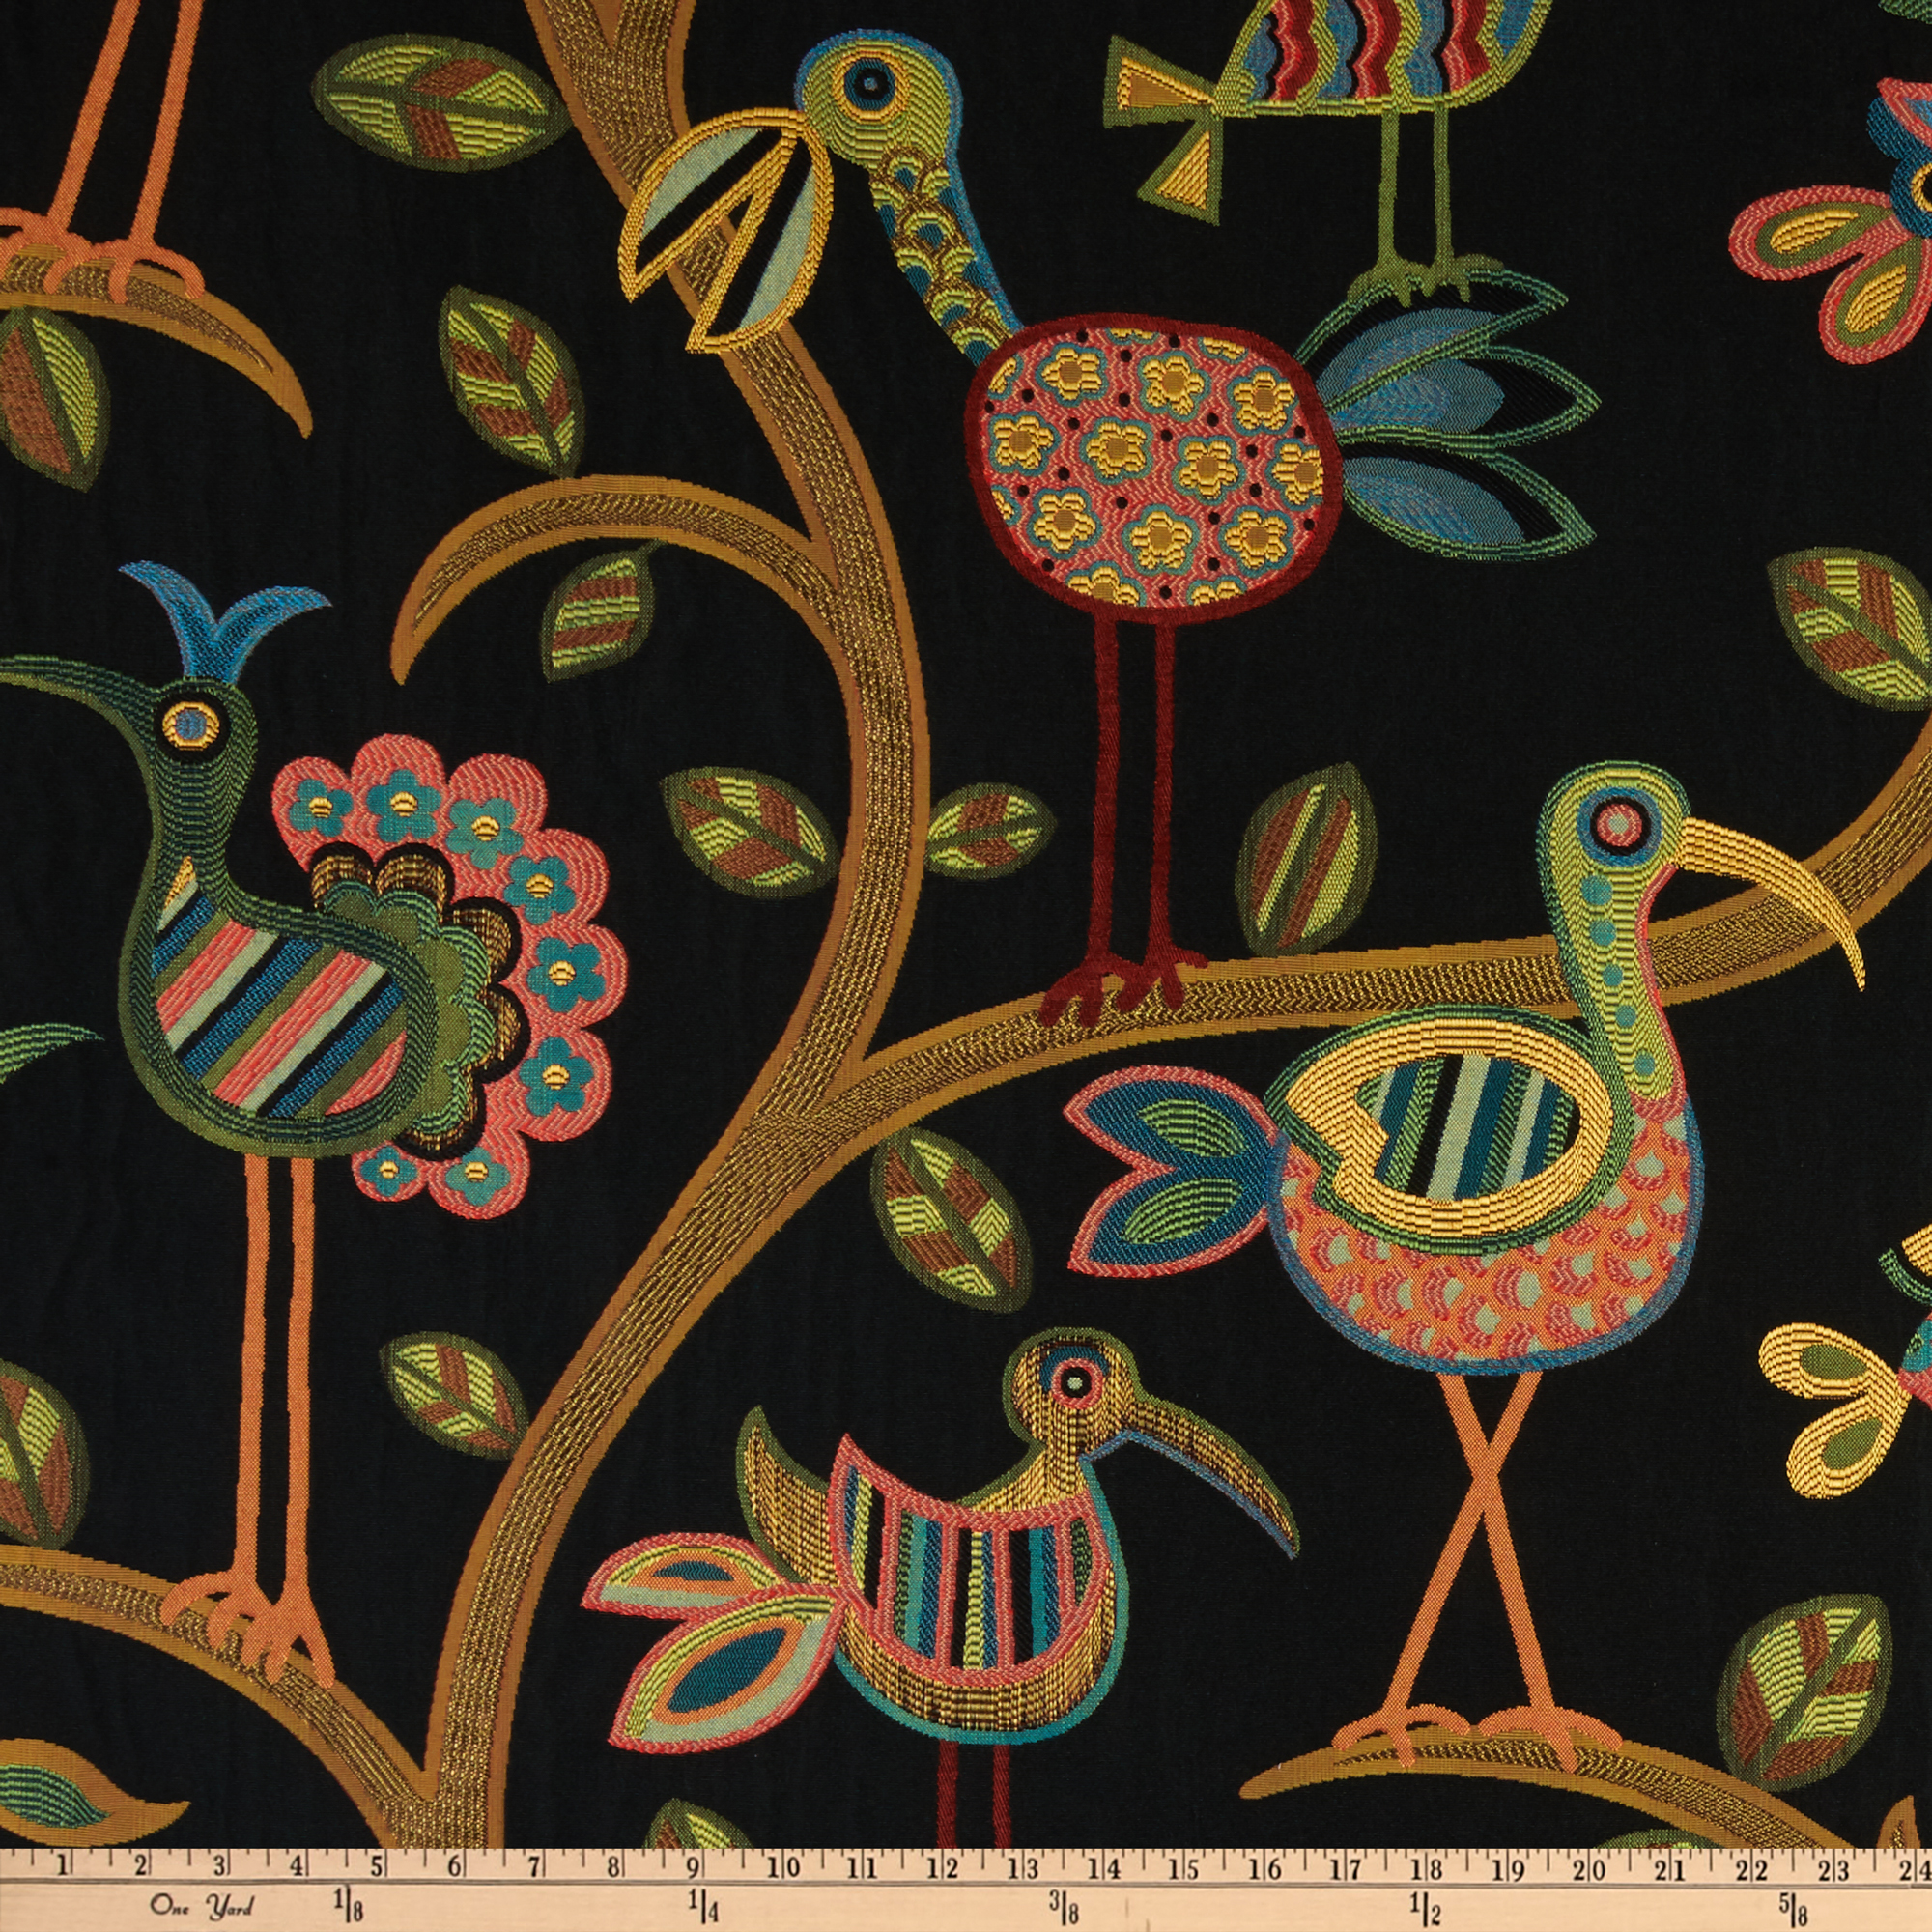 Swavelle/Mill Creek Crazy Ol' Bird Jacquard Midnight Fabric by Swavelle Mill Creek in USA